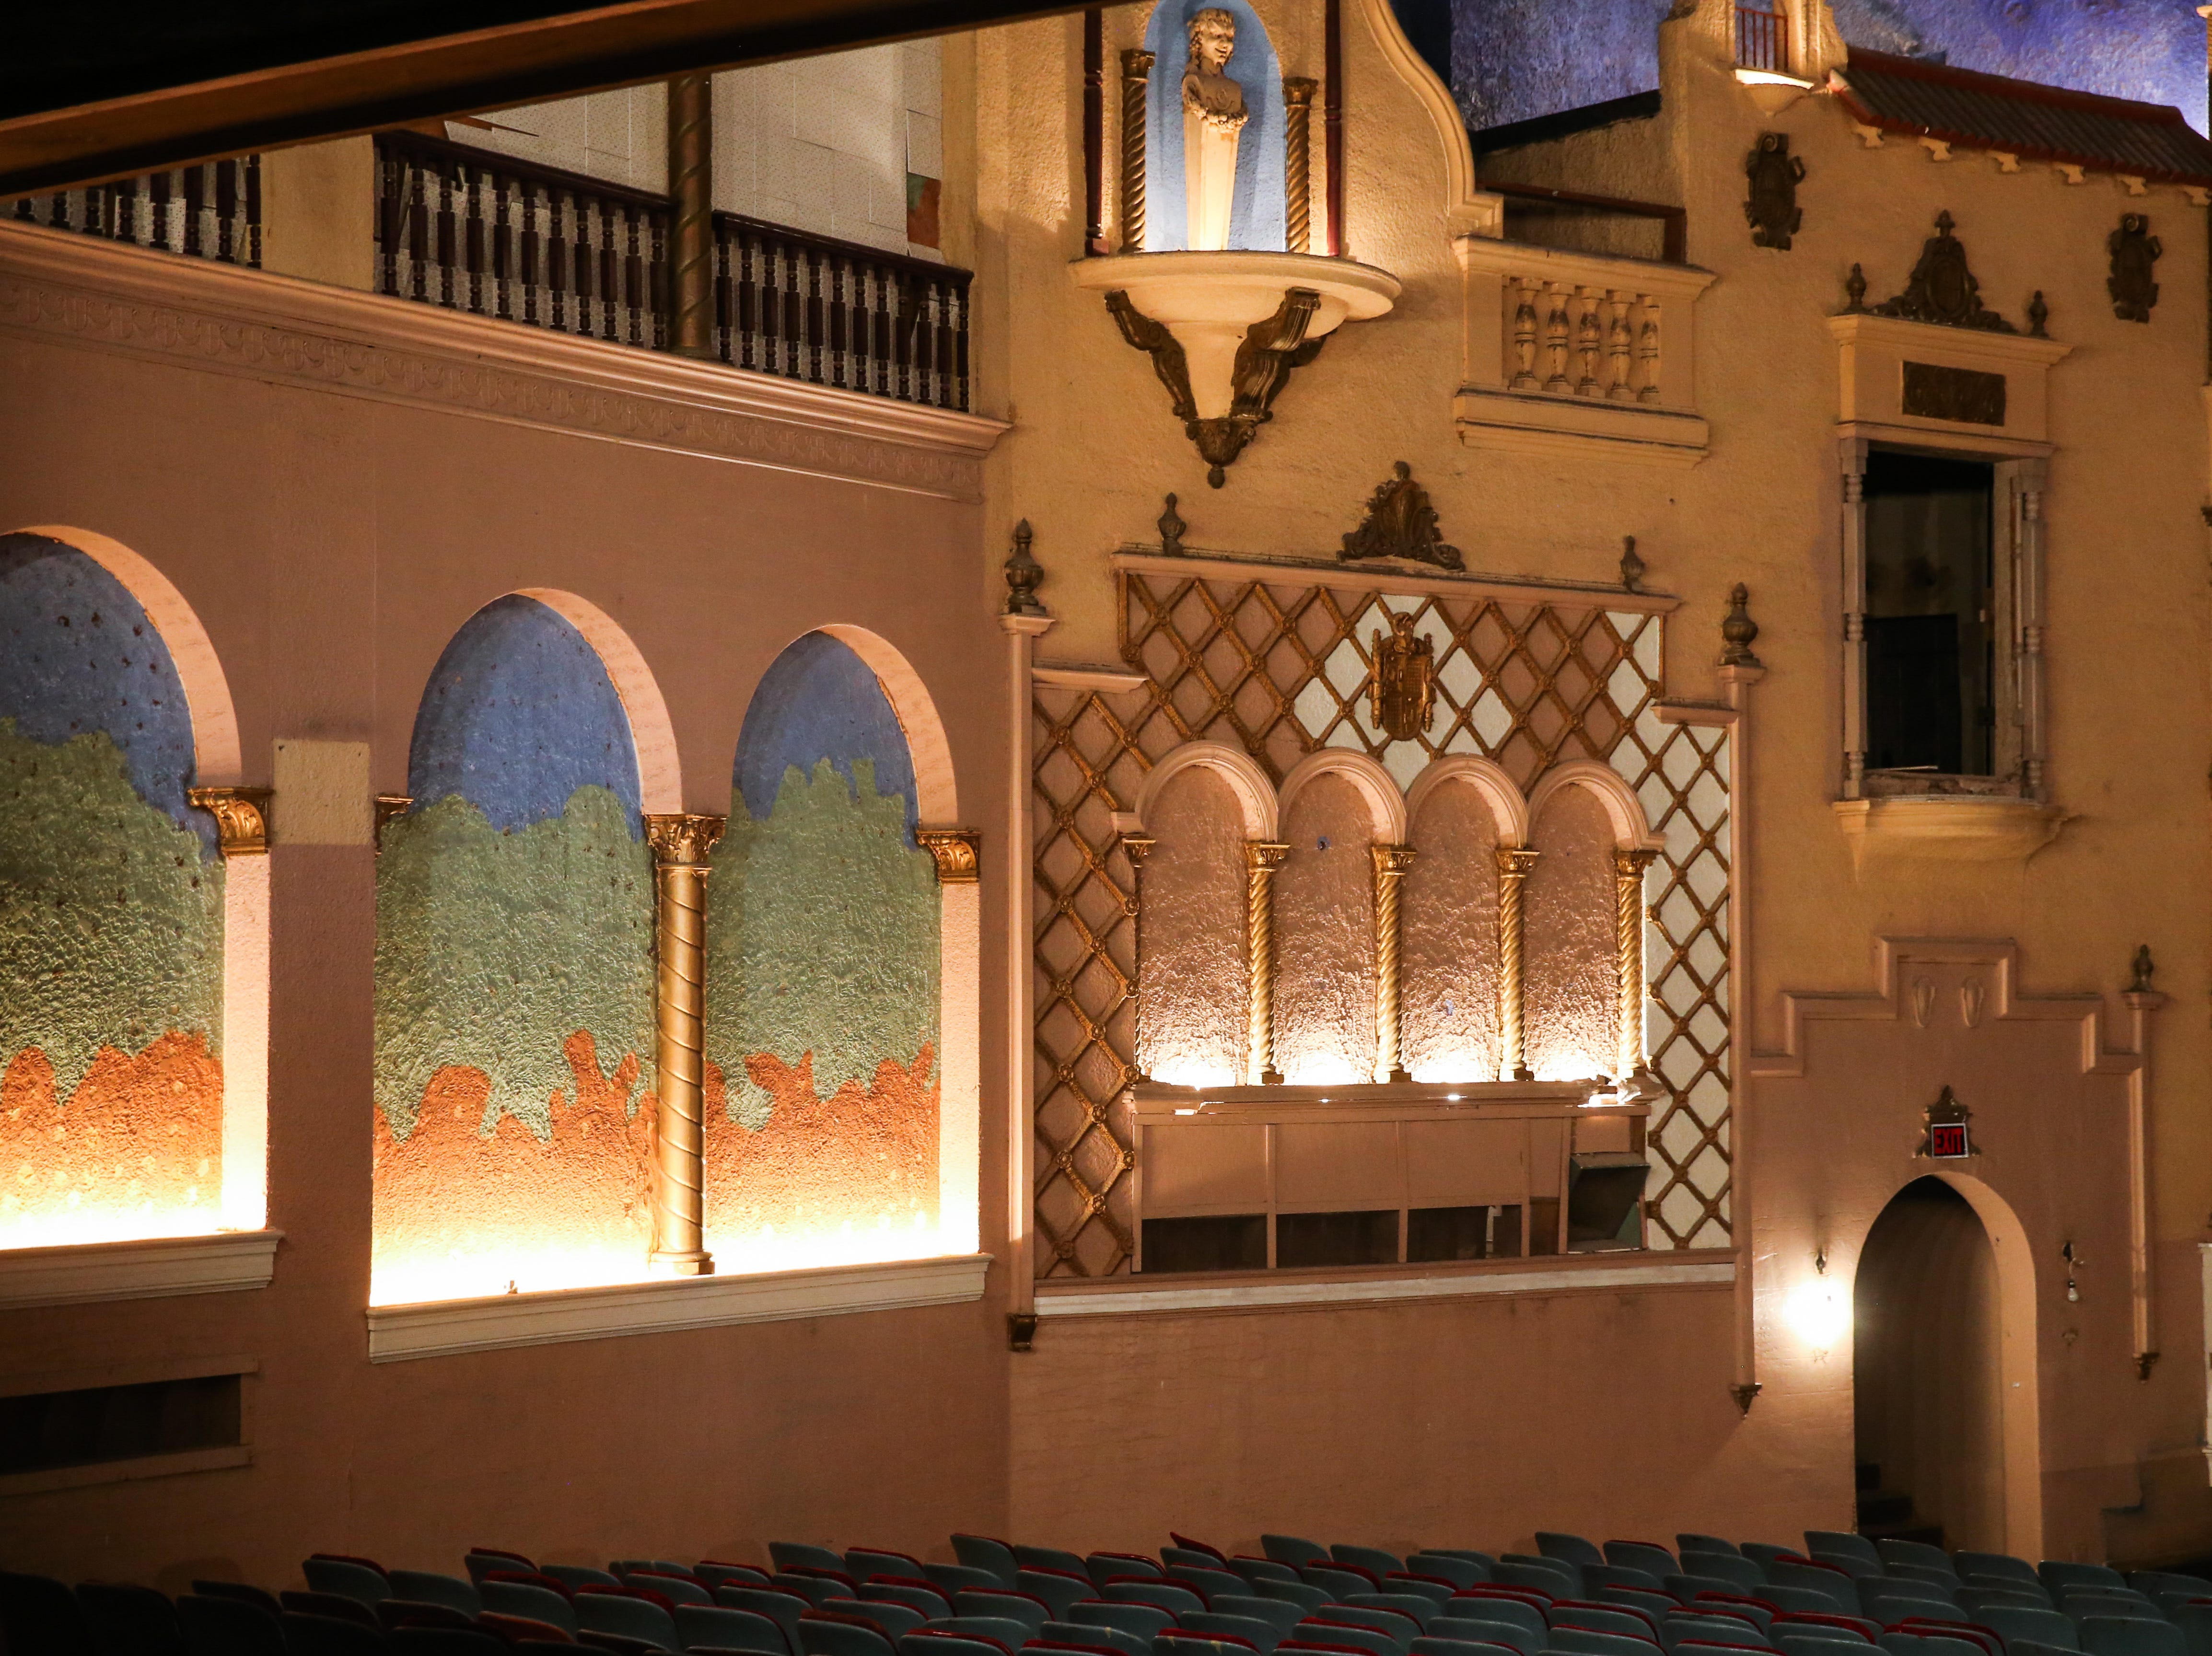 The auditorium was made to look like Spanish outdoors at former Texas Theatre. The building was built in 1929.